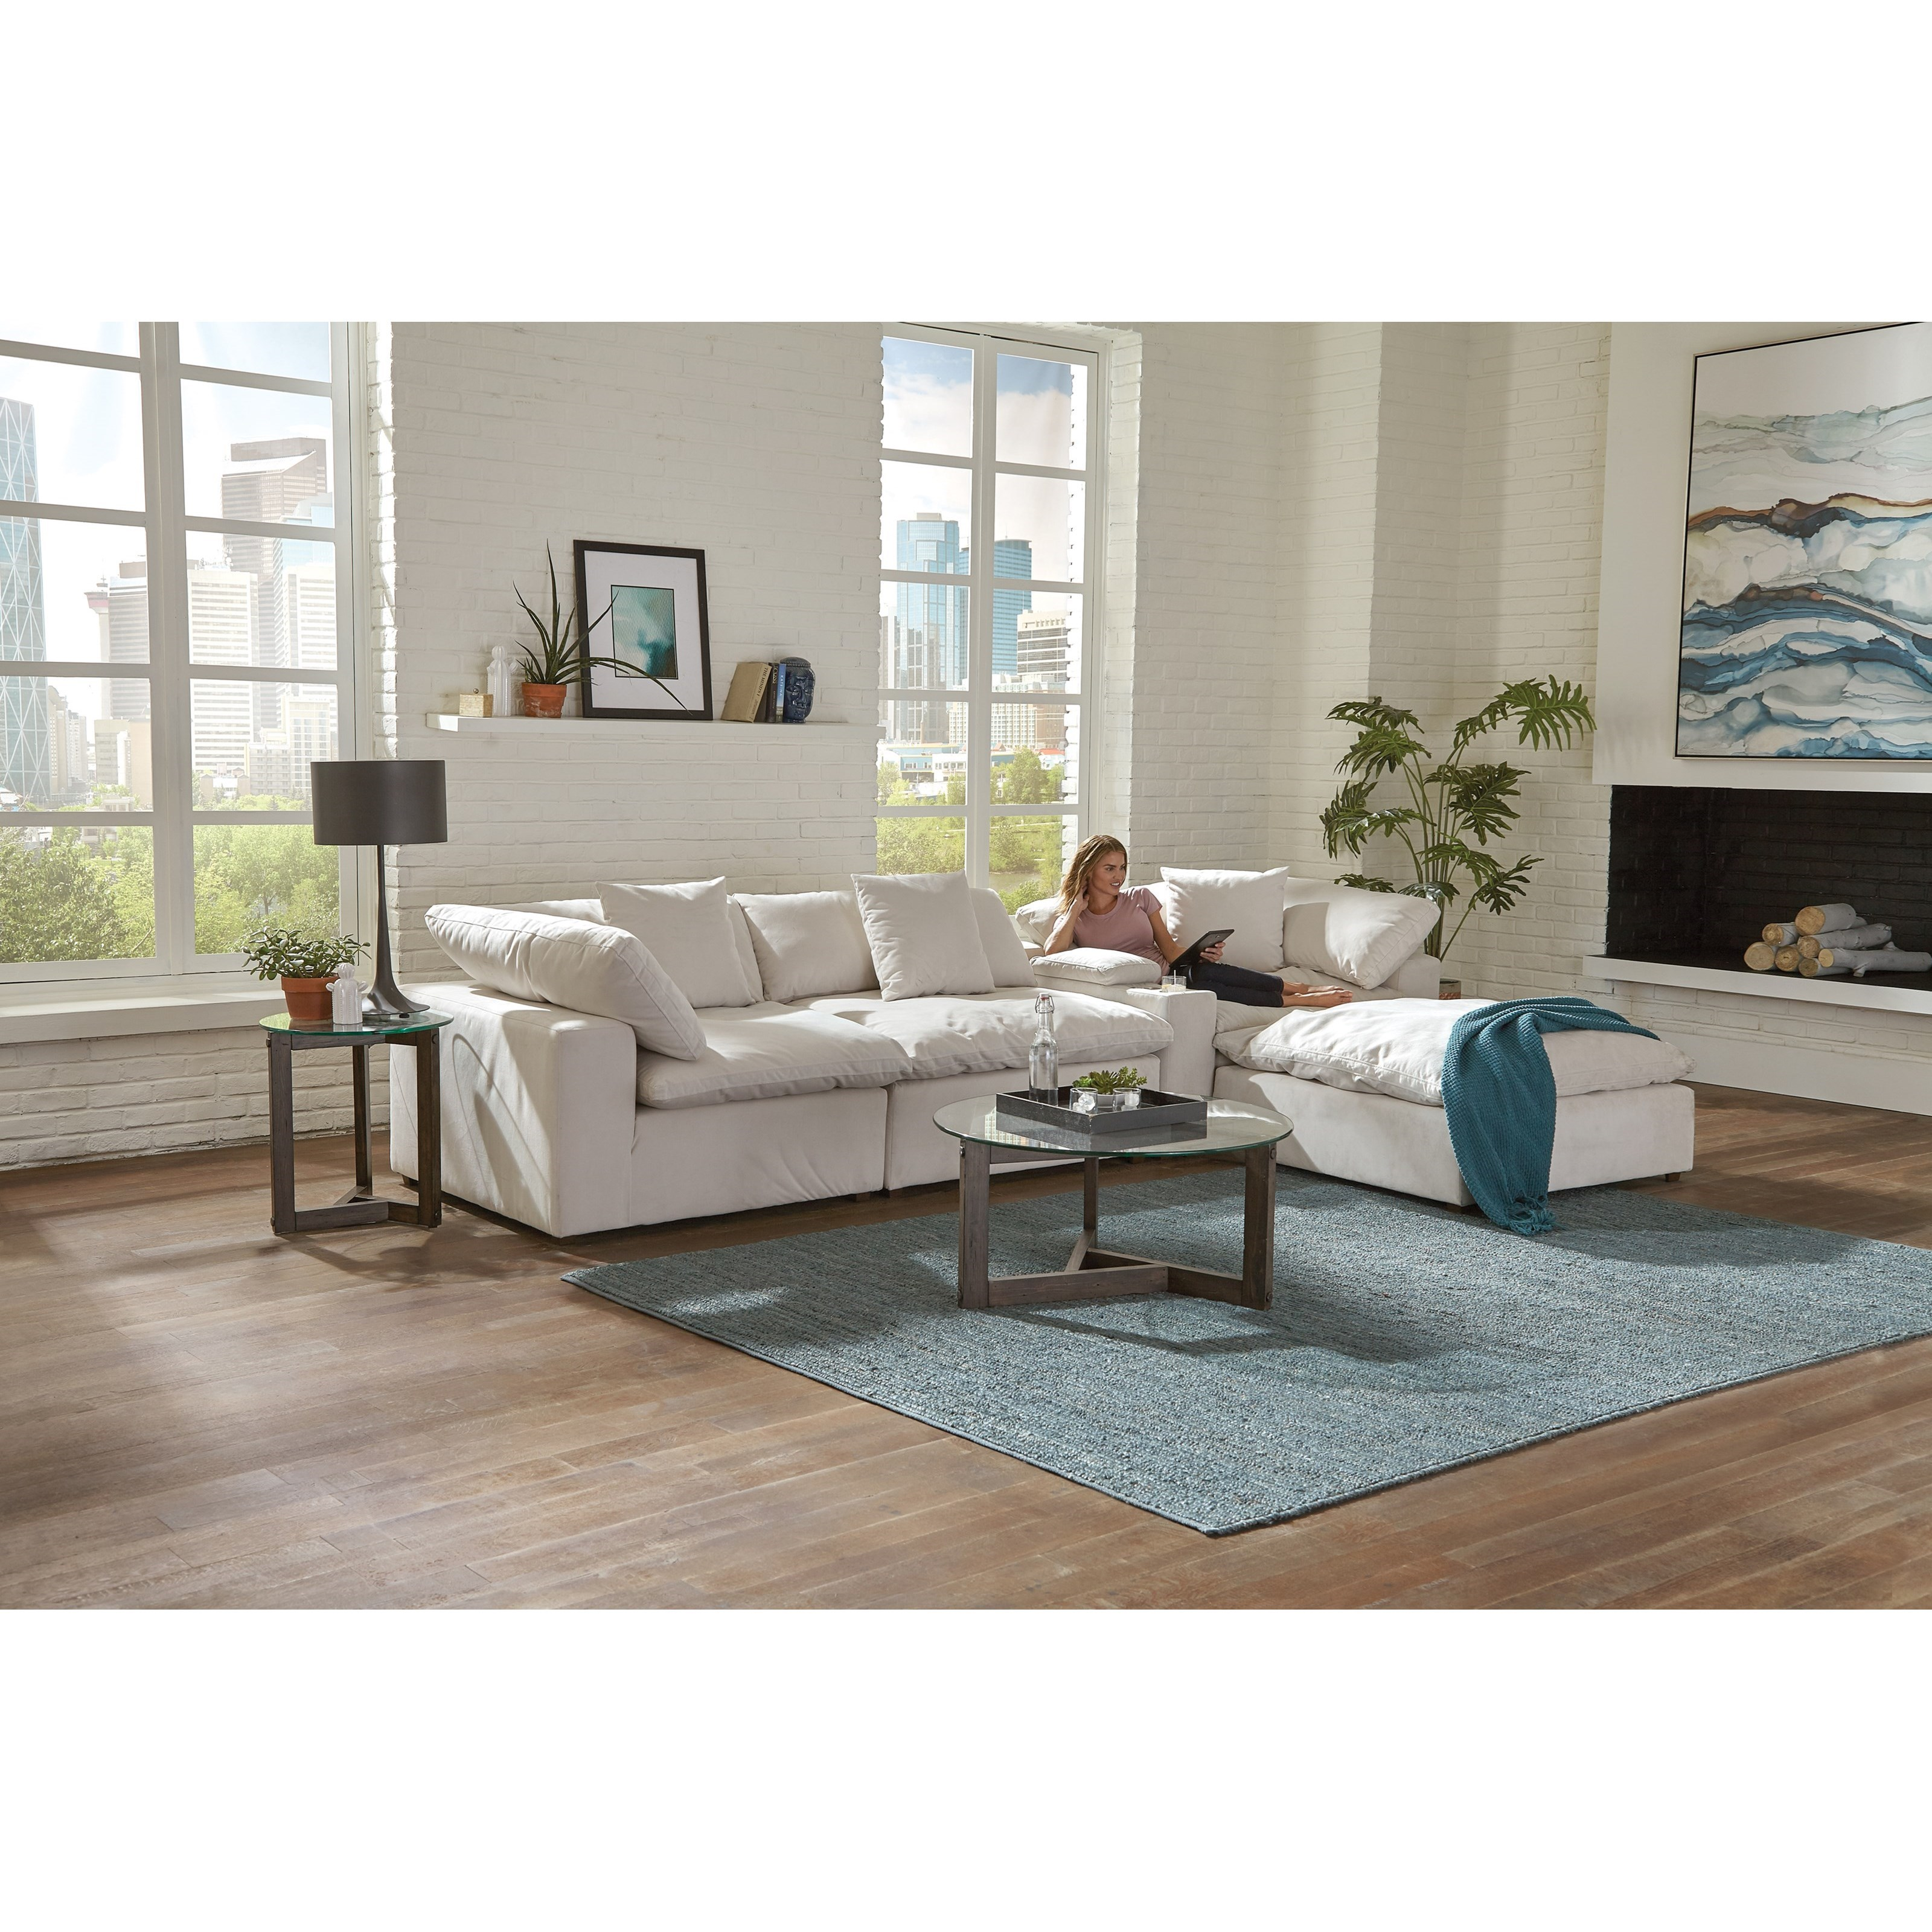 Living Room Ideas To Steal For Comforting Vibe Found In: Jackson Furniture Posh Contemporary Chaise Sofa With